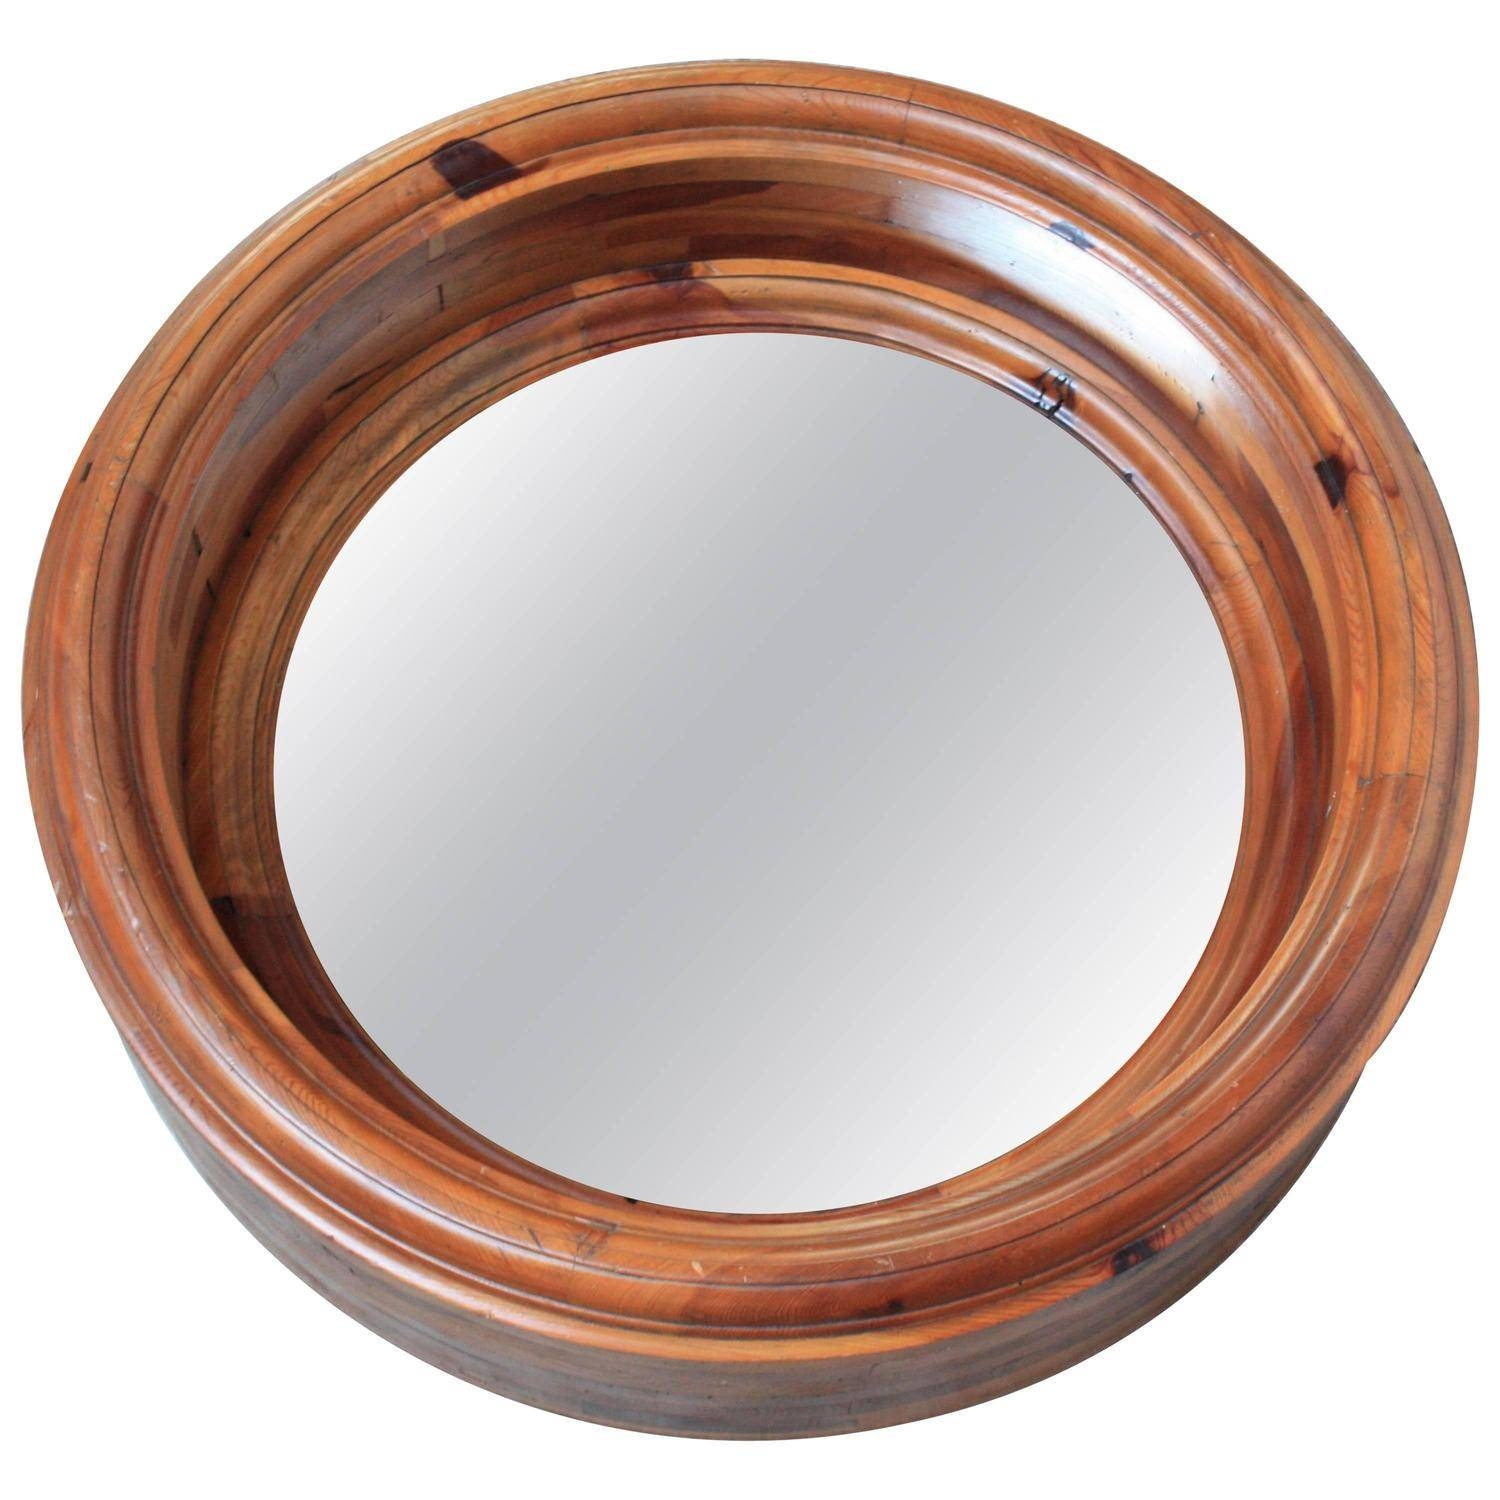 Large Wooden Porthole Mirrorralph Lauren For Sale At 1Stdibs regarding Porthole Wall Mirrors (Image 14 of 25)